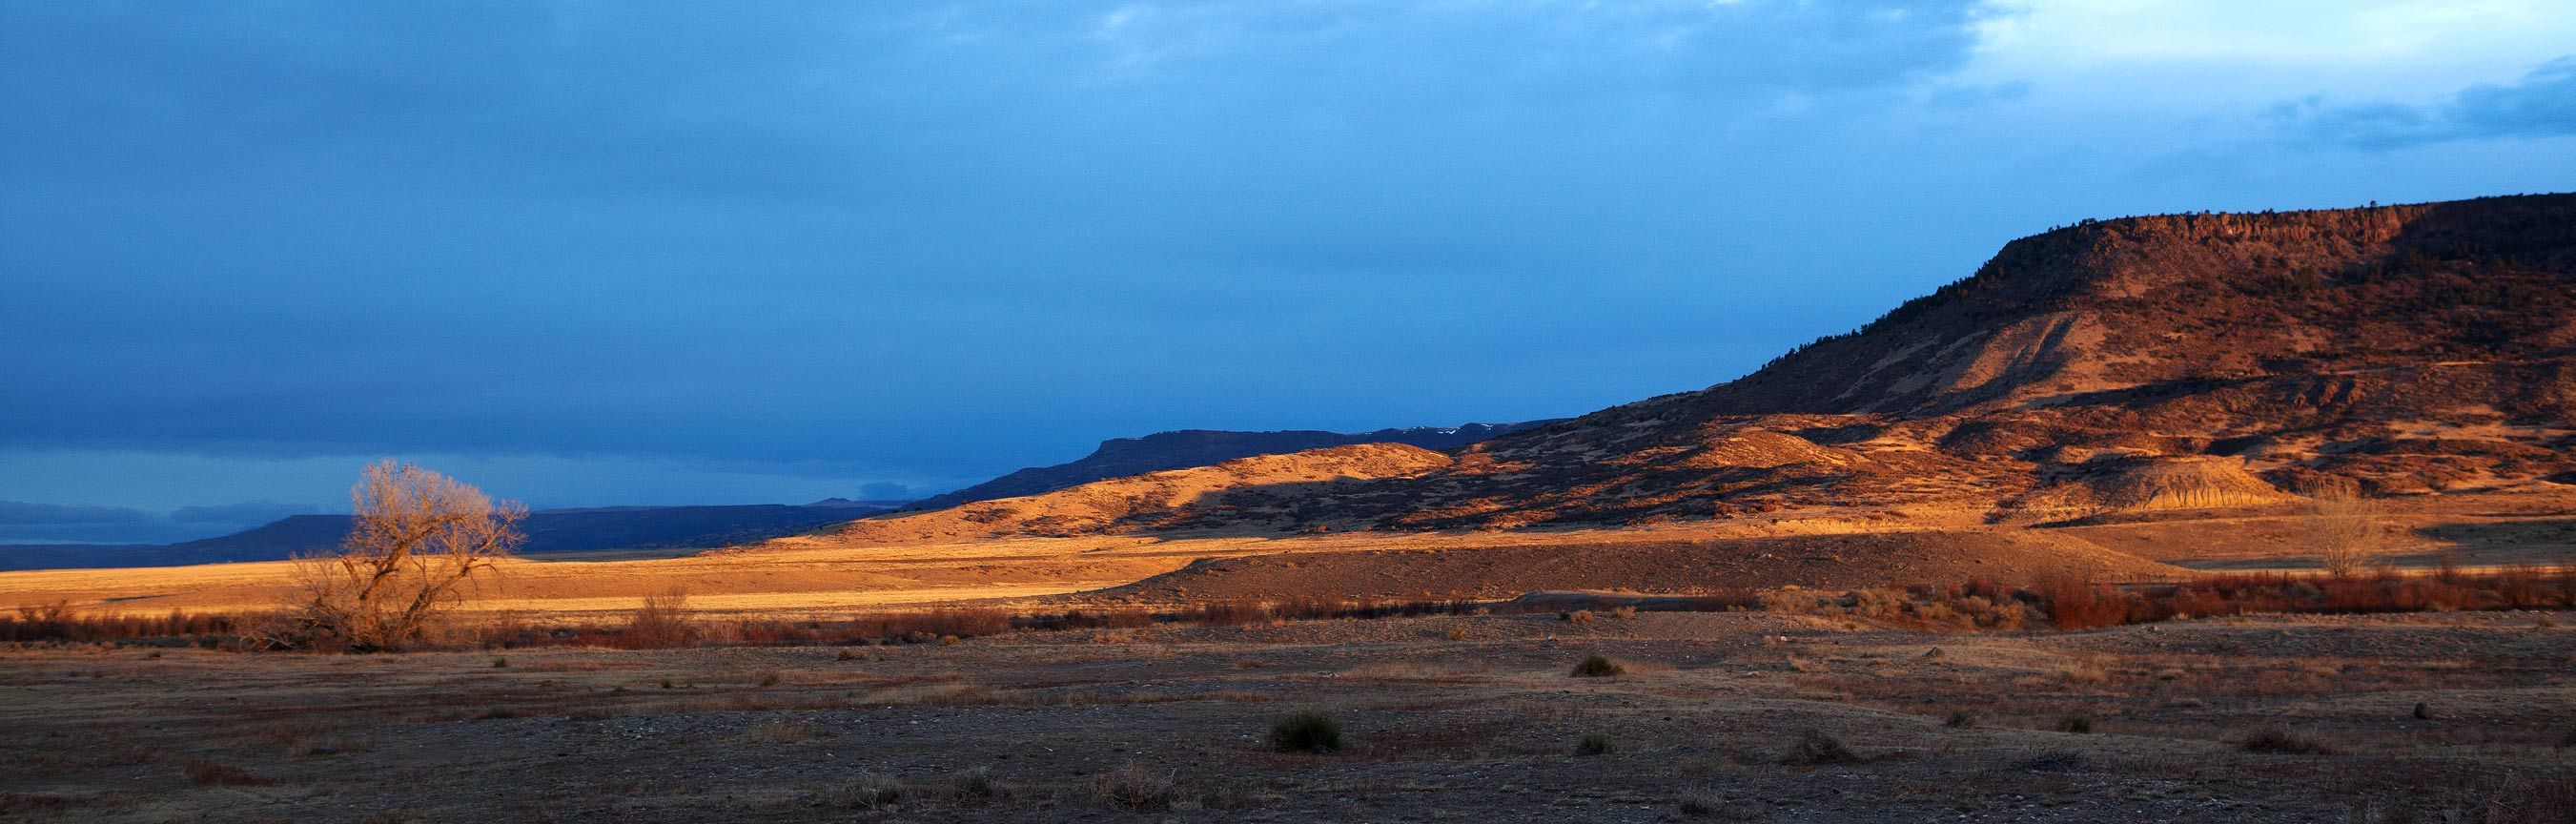 Sunrise from along Hwy 87 near Raton, New Mexico looking west.